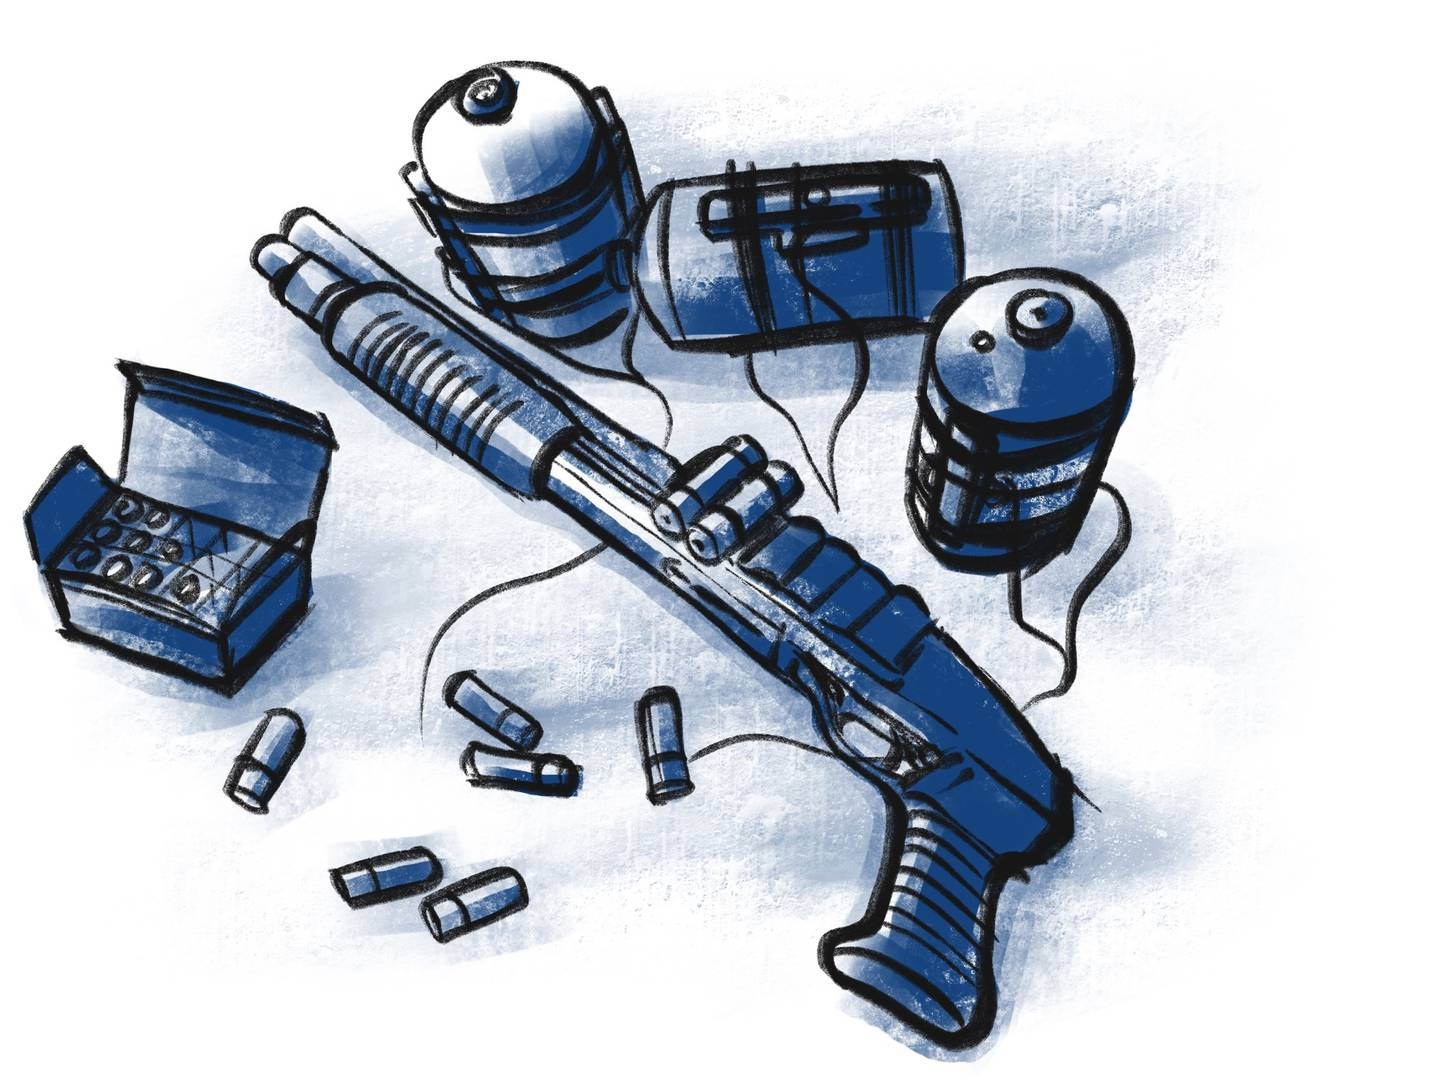 The self-described 'terrorist' was armed with a pistol-grip shotgun and homemade bombs....